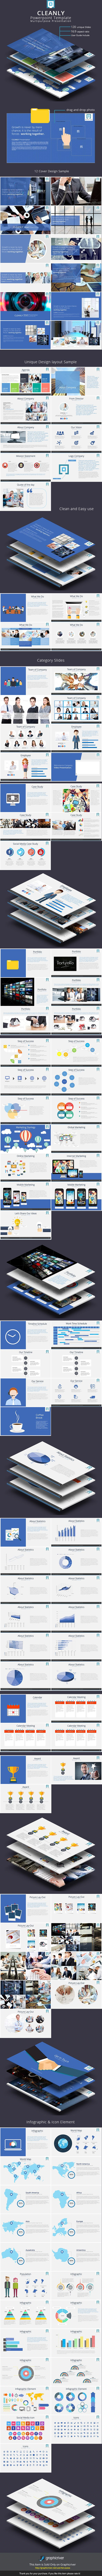 Cleanly Powerpoint Template - Business PowerPoint Templates